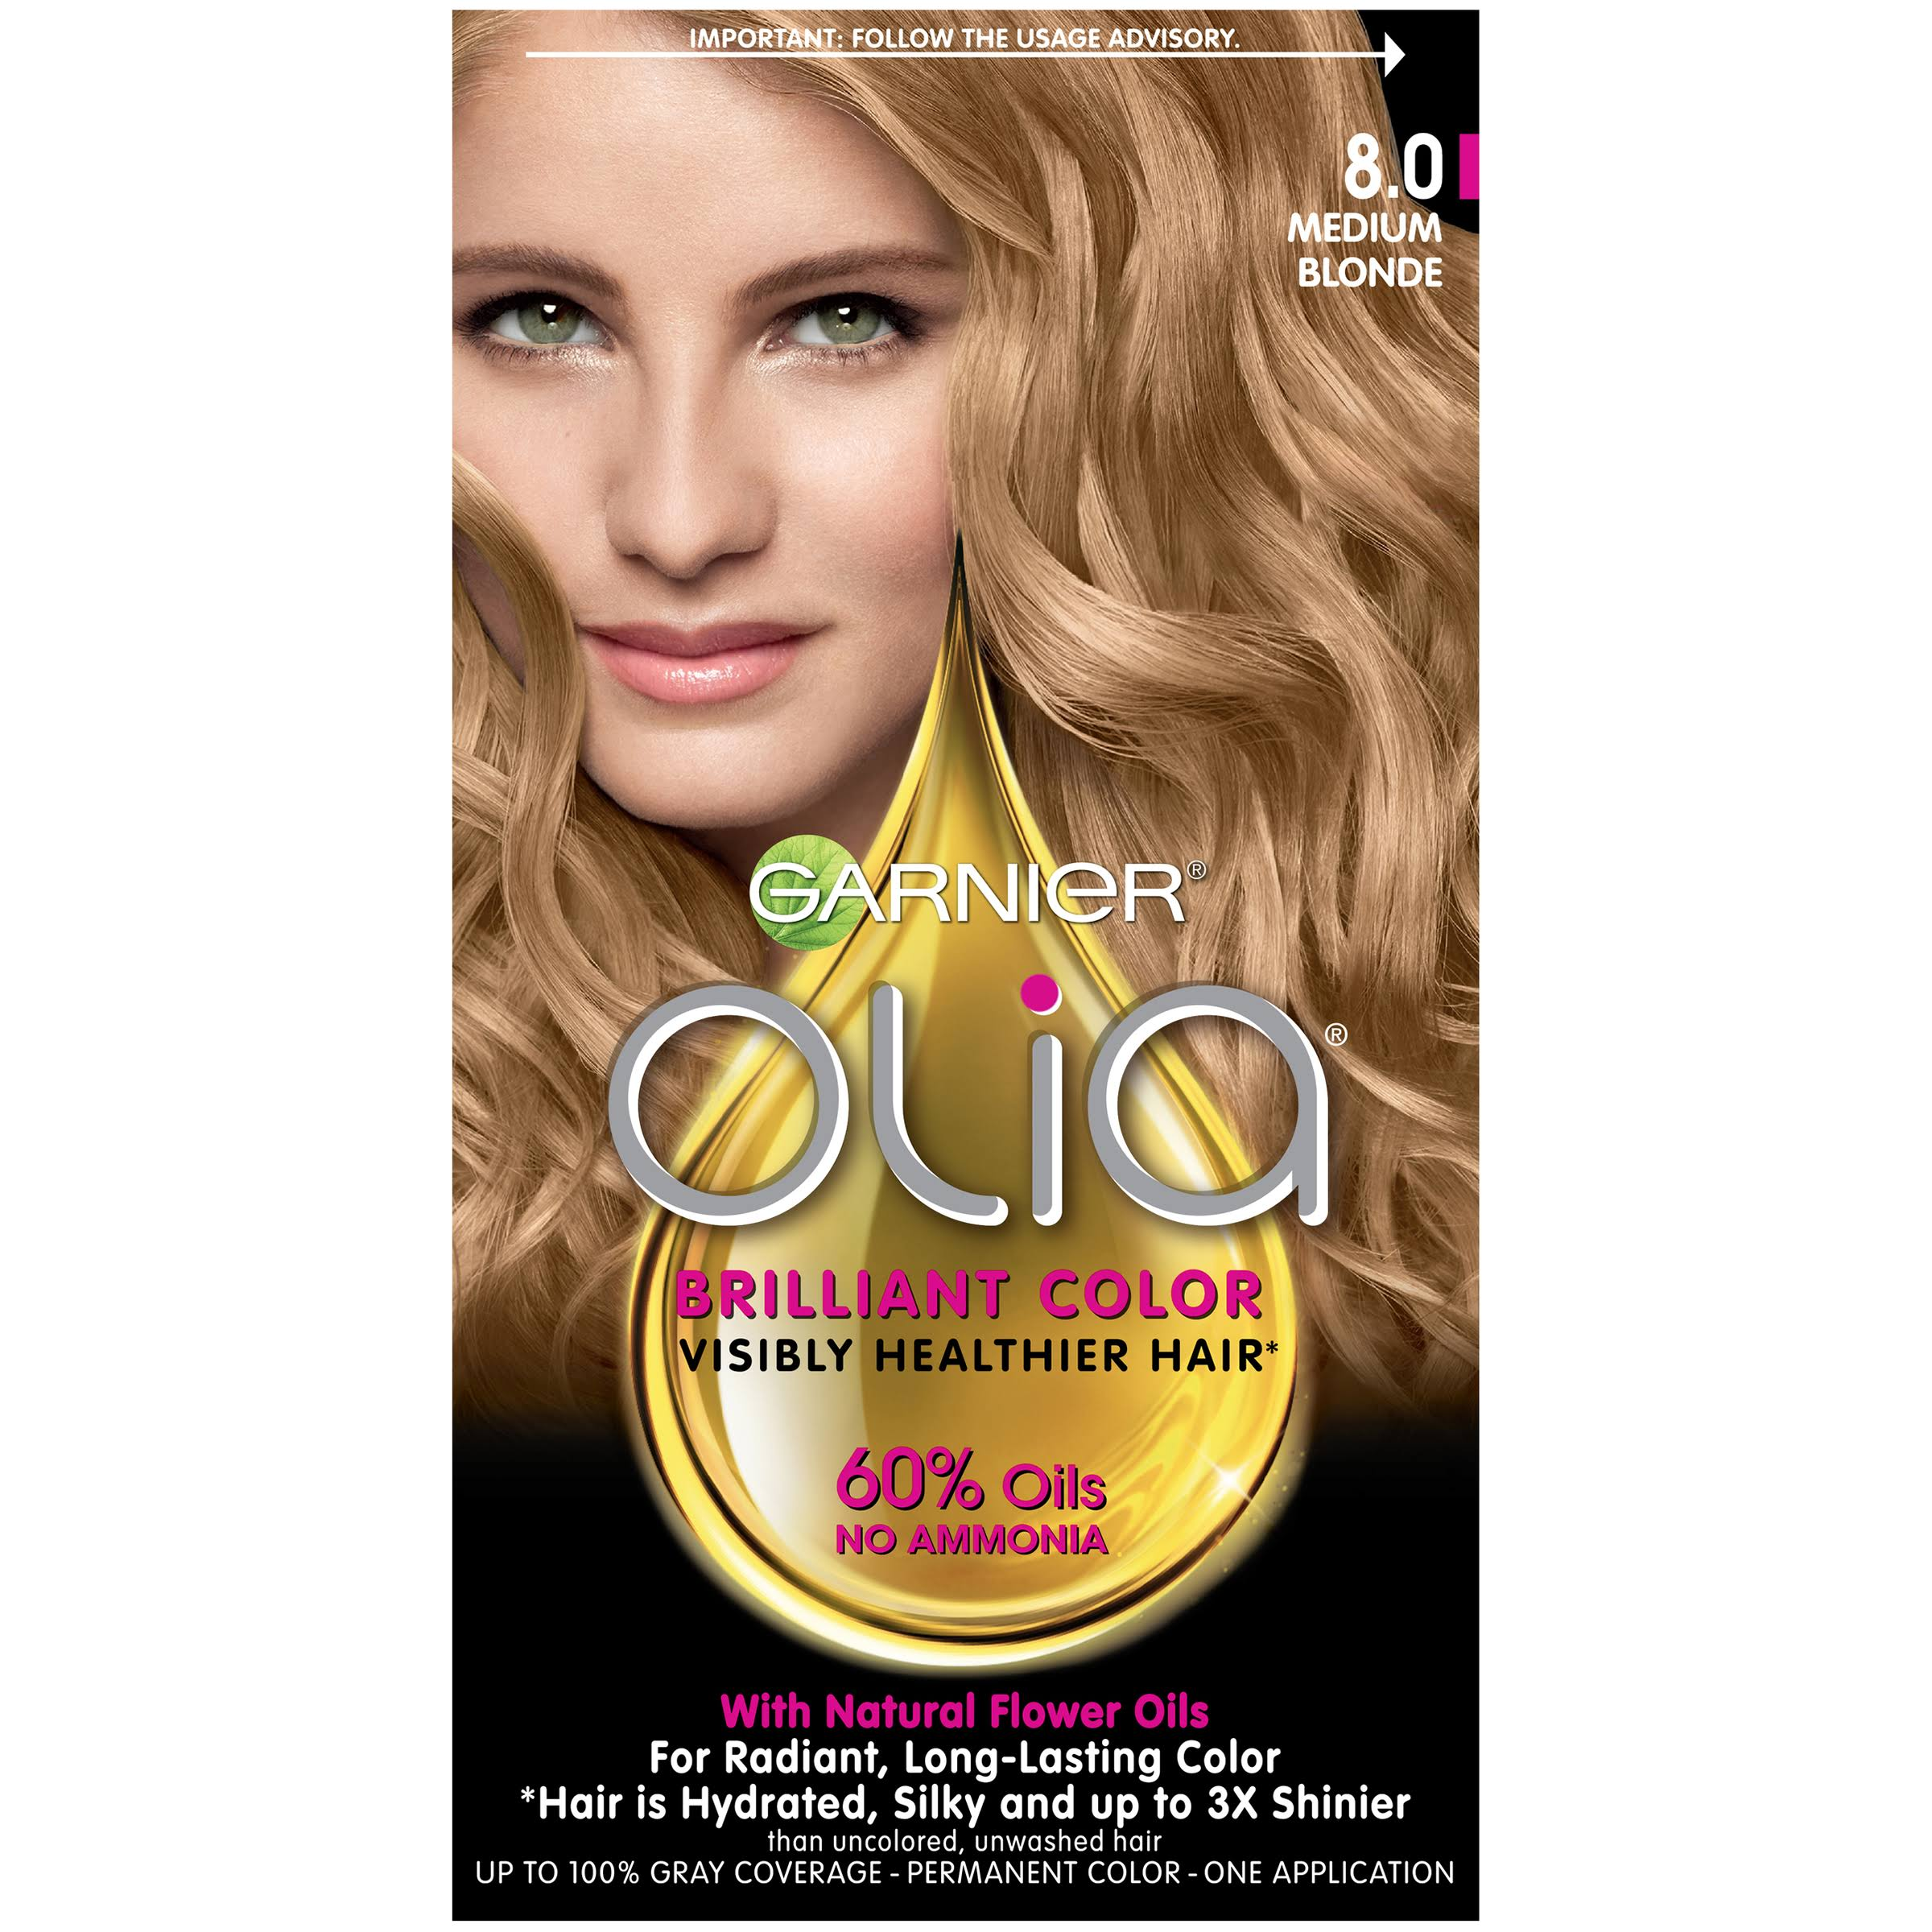 Garnier Olia Permanent Color - 8.0 Medium Blonde